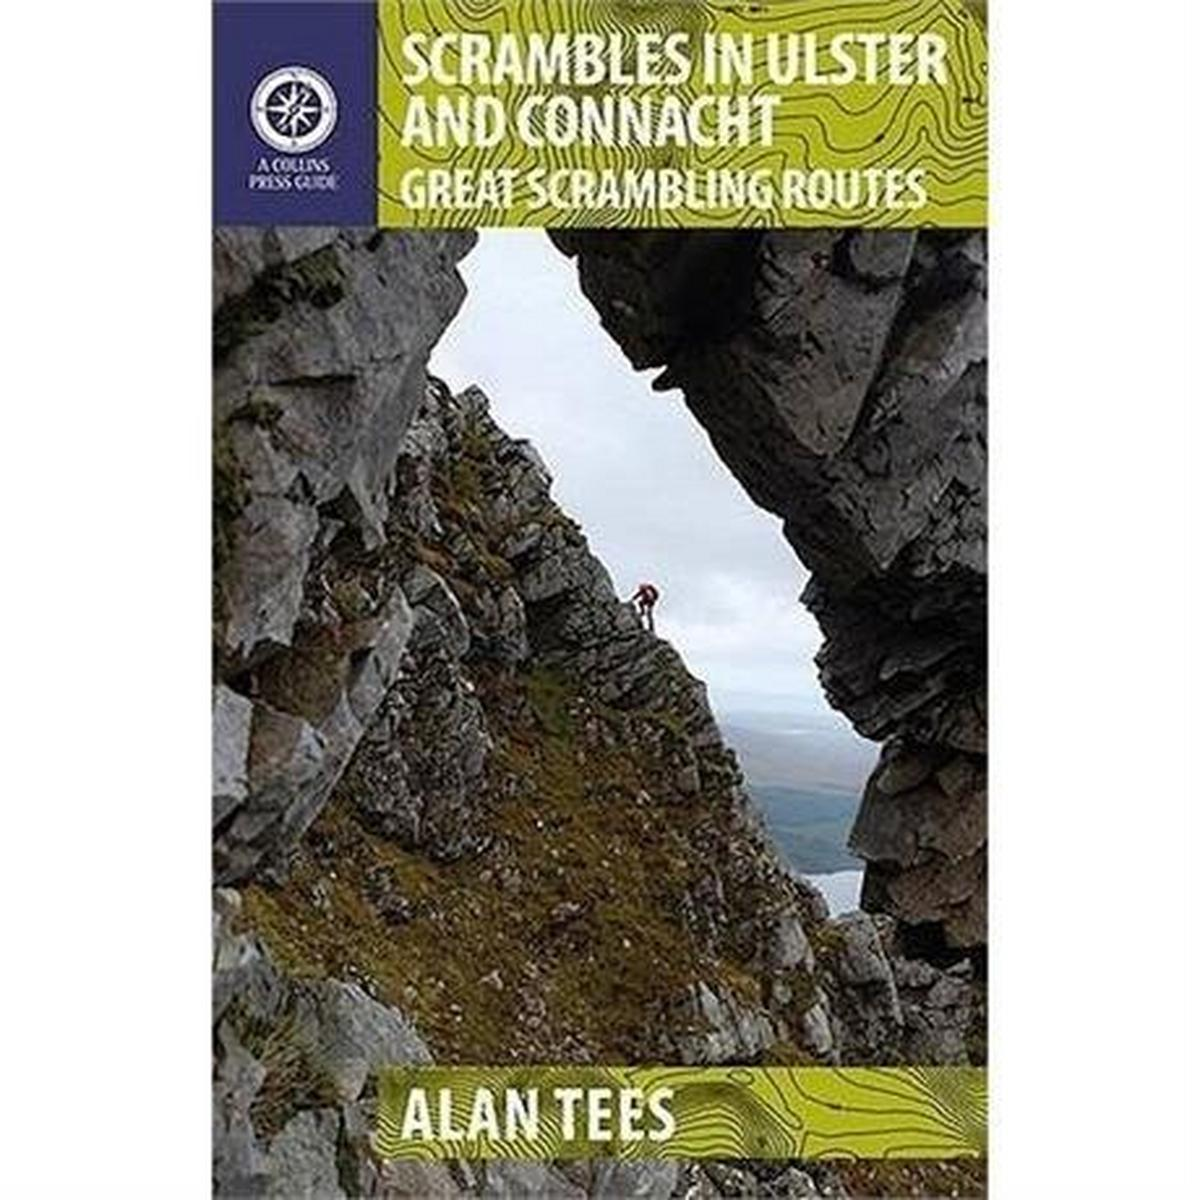 Miscellaneous Scrambling Guide Book: Scrambles in Ulster and Connacht